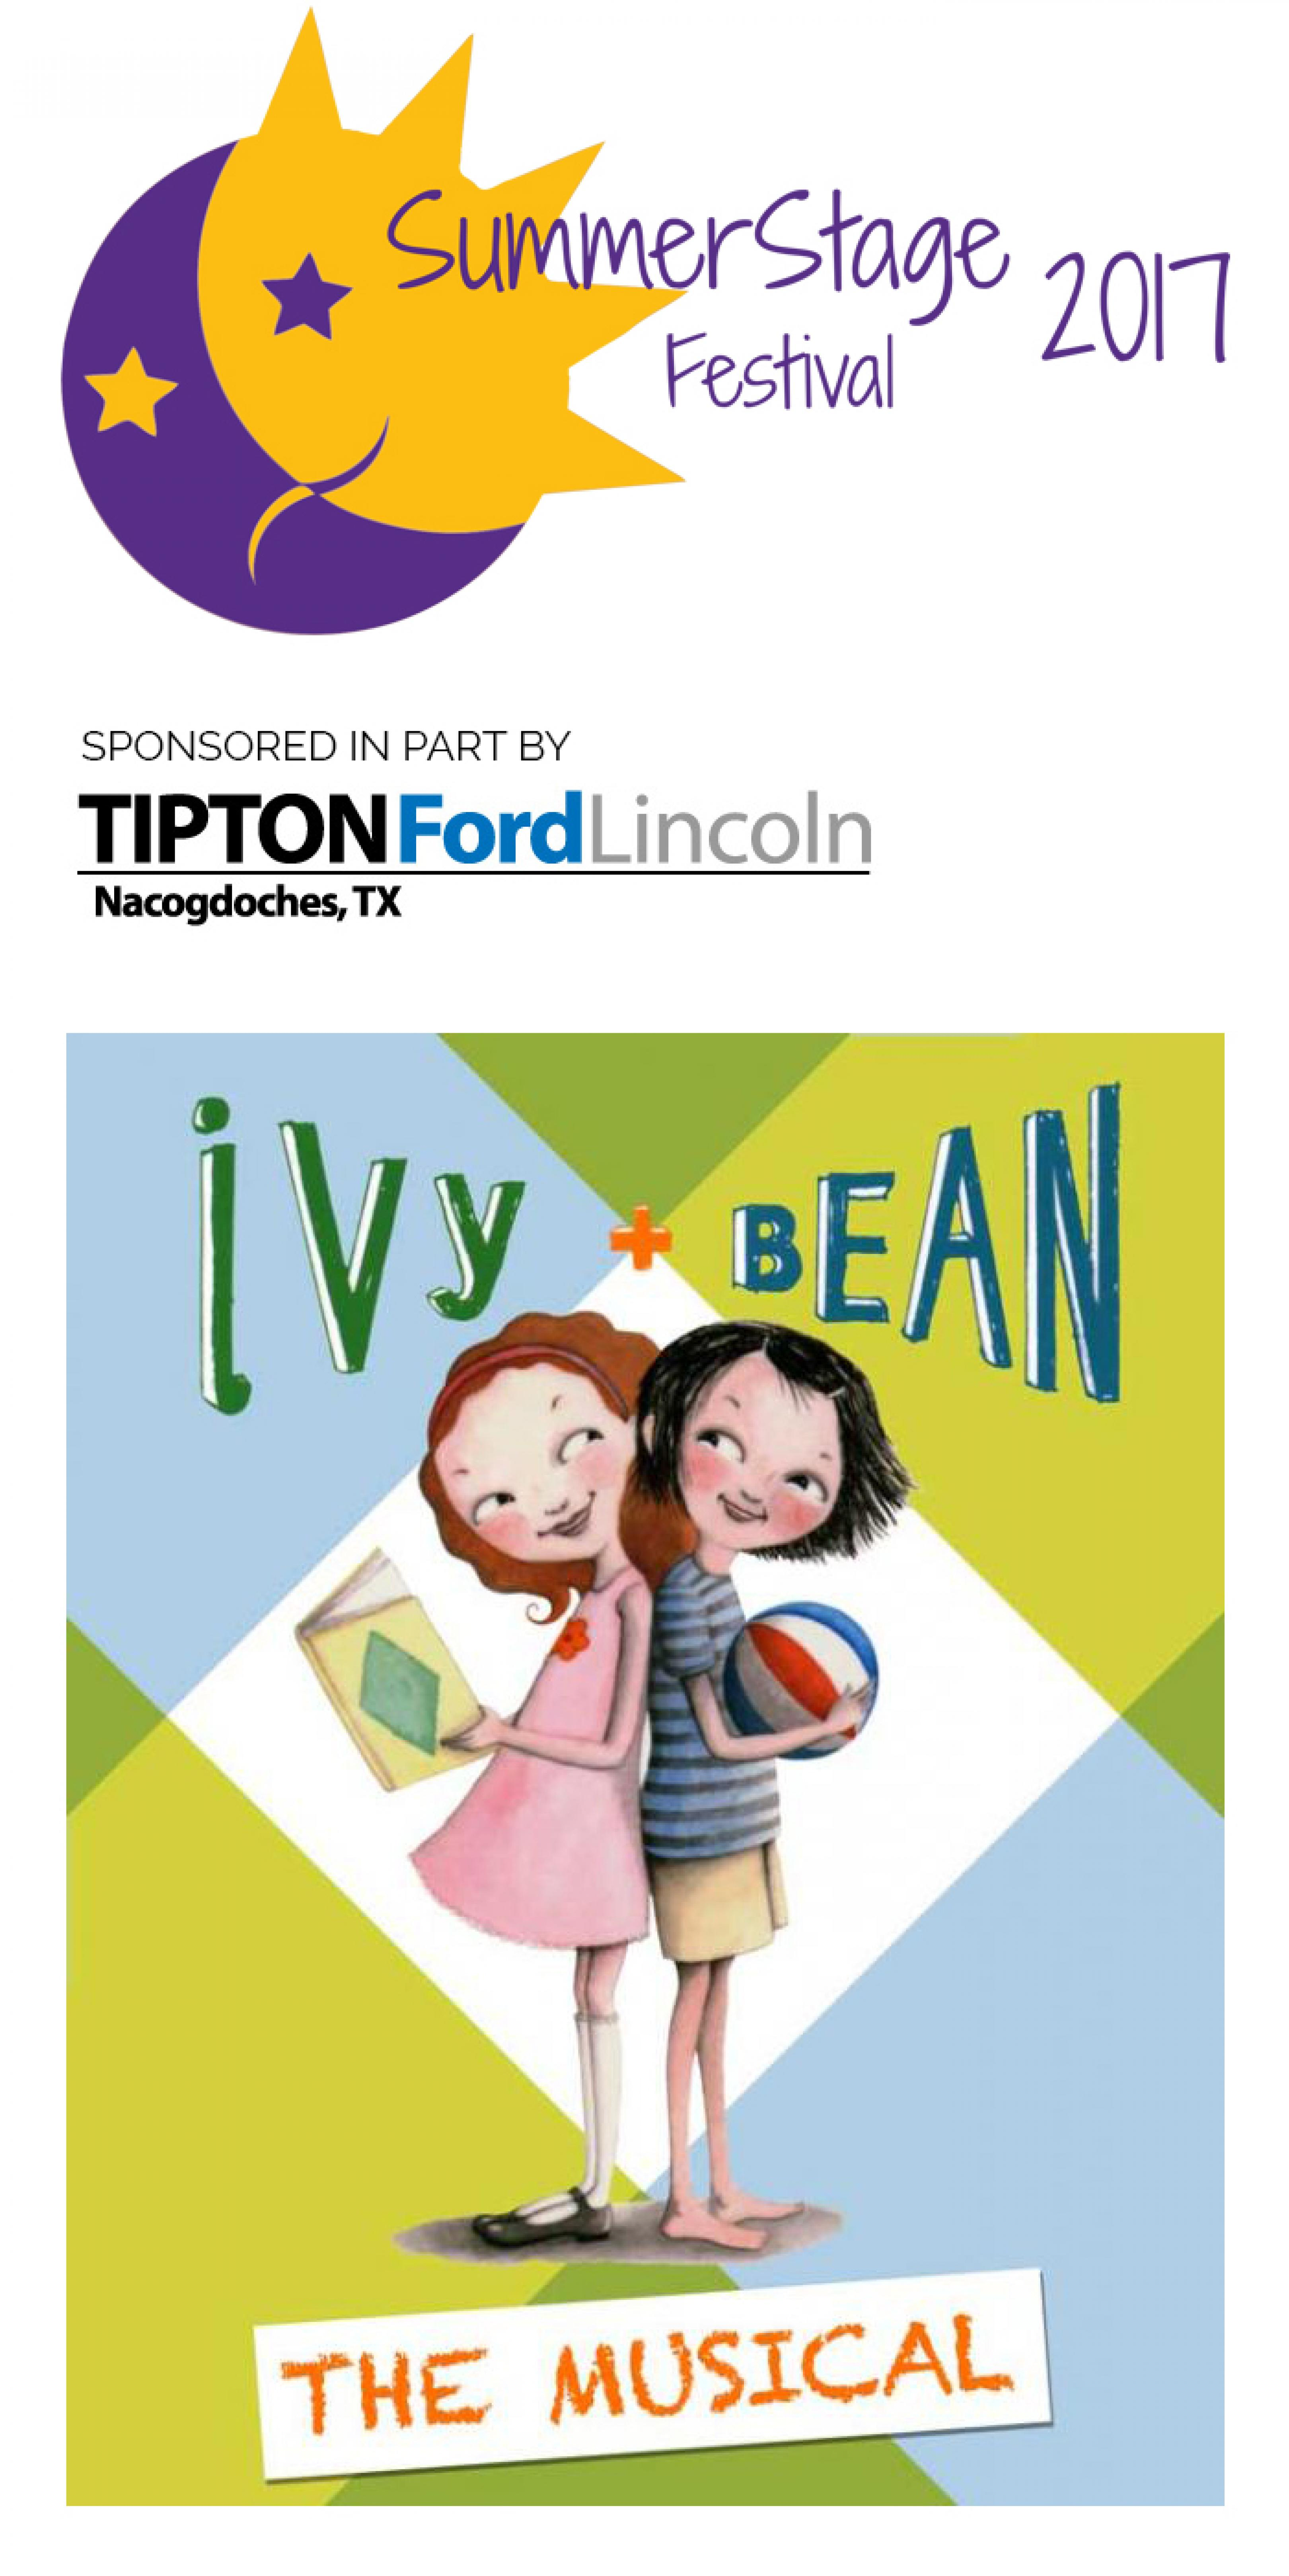 publicity image for Ivy + Bean the Musical